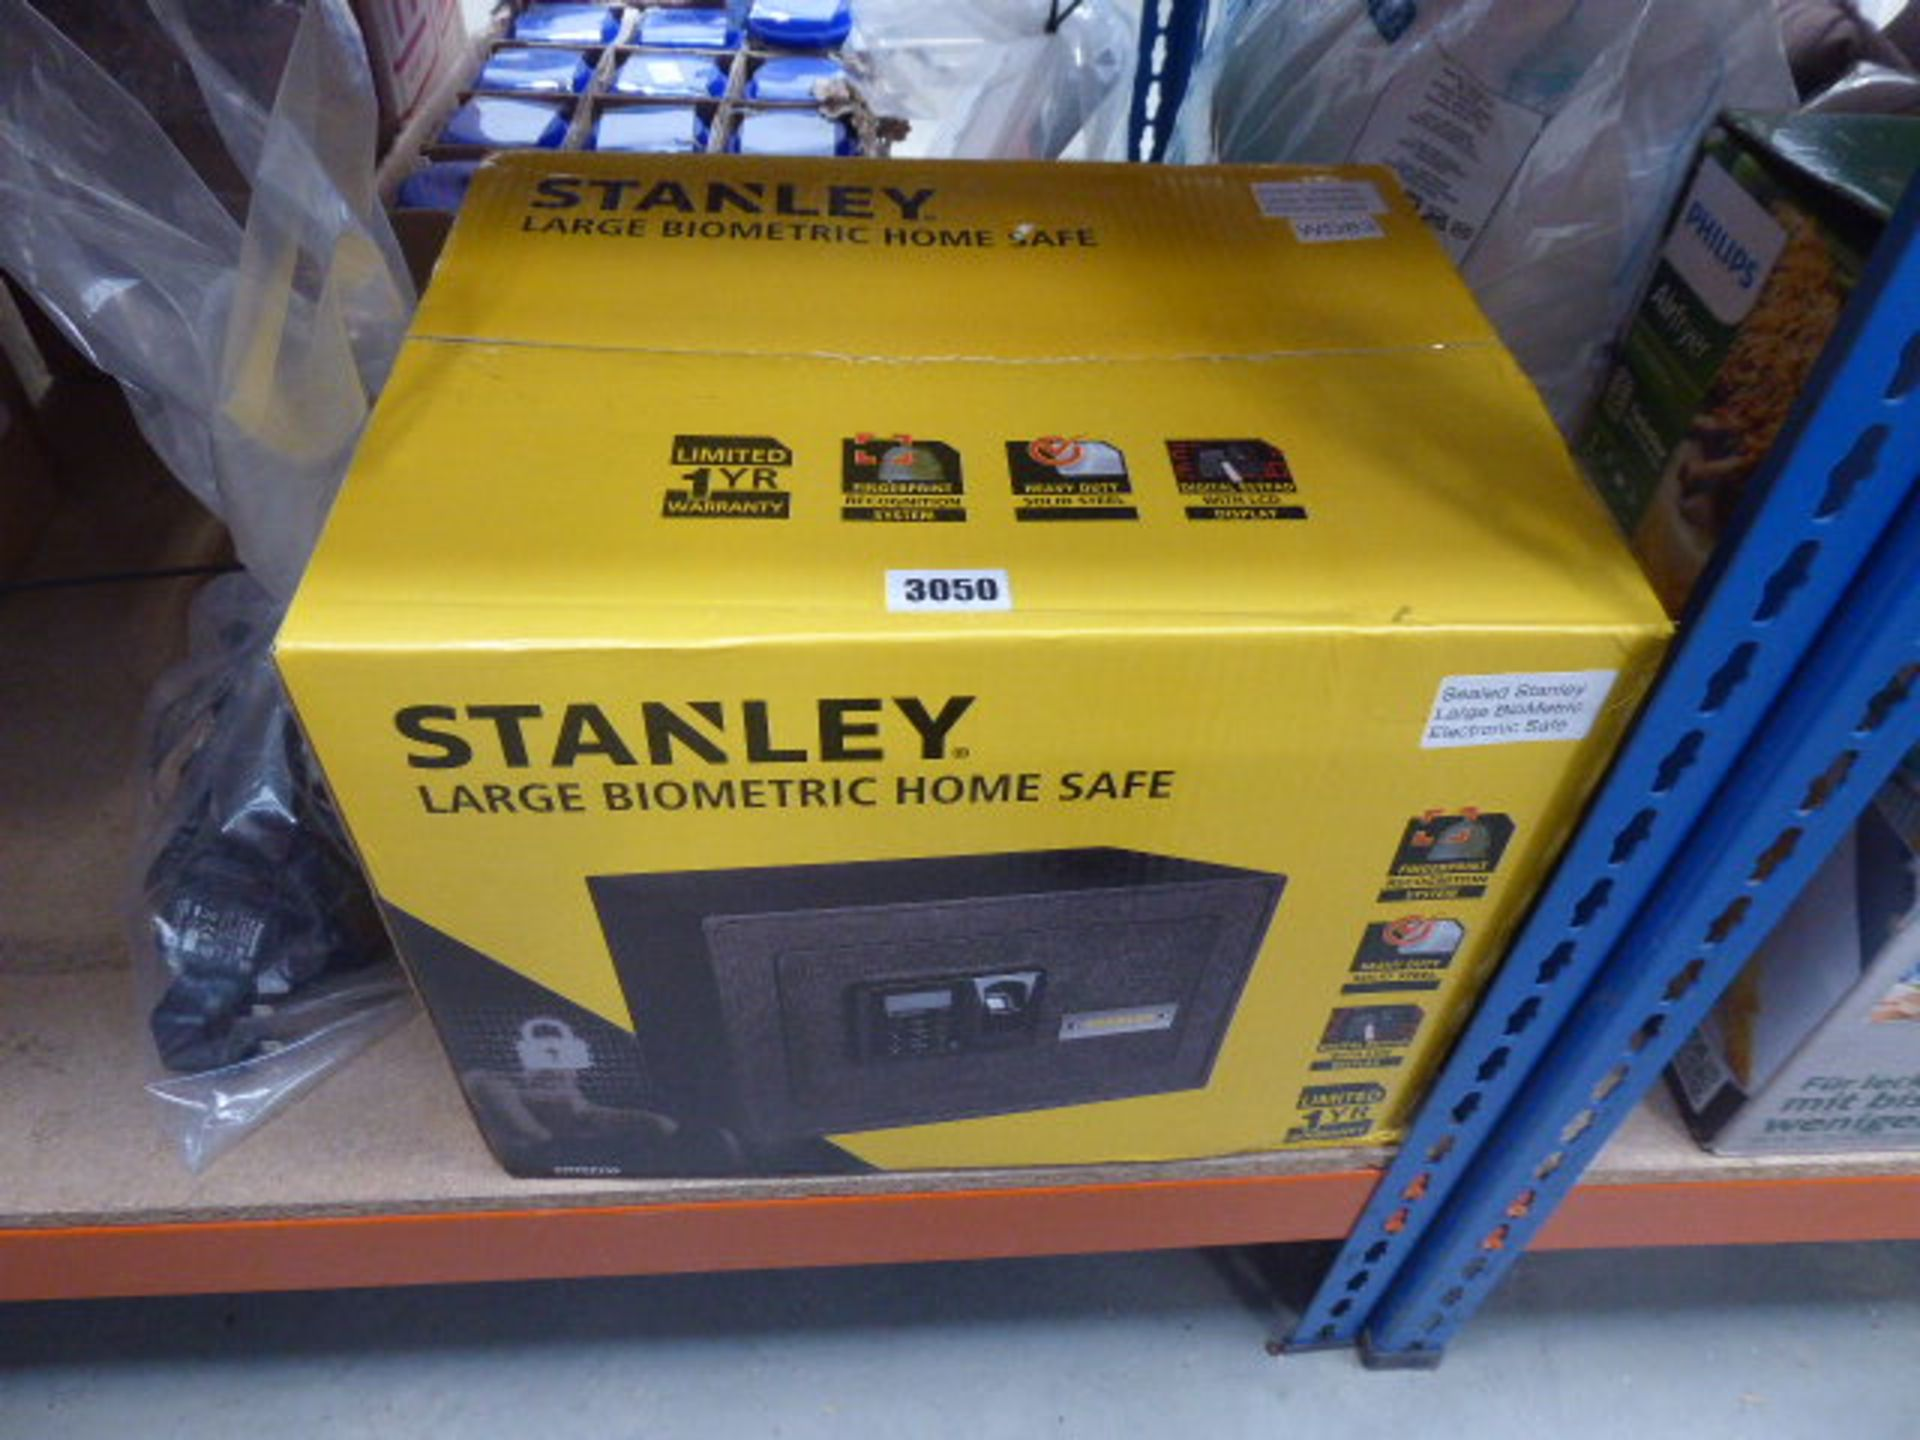 Lot 3050 - Stanley large biometric electronic safe